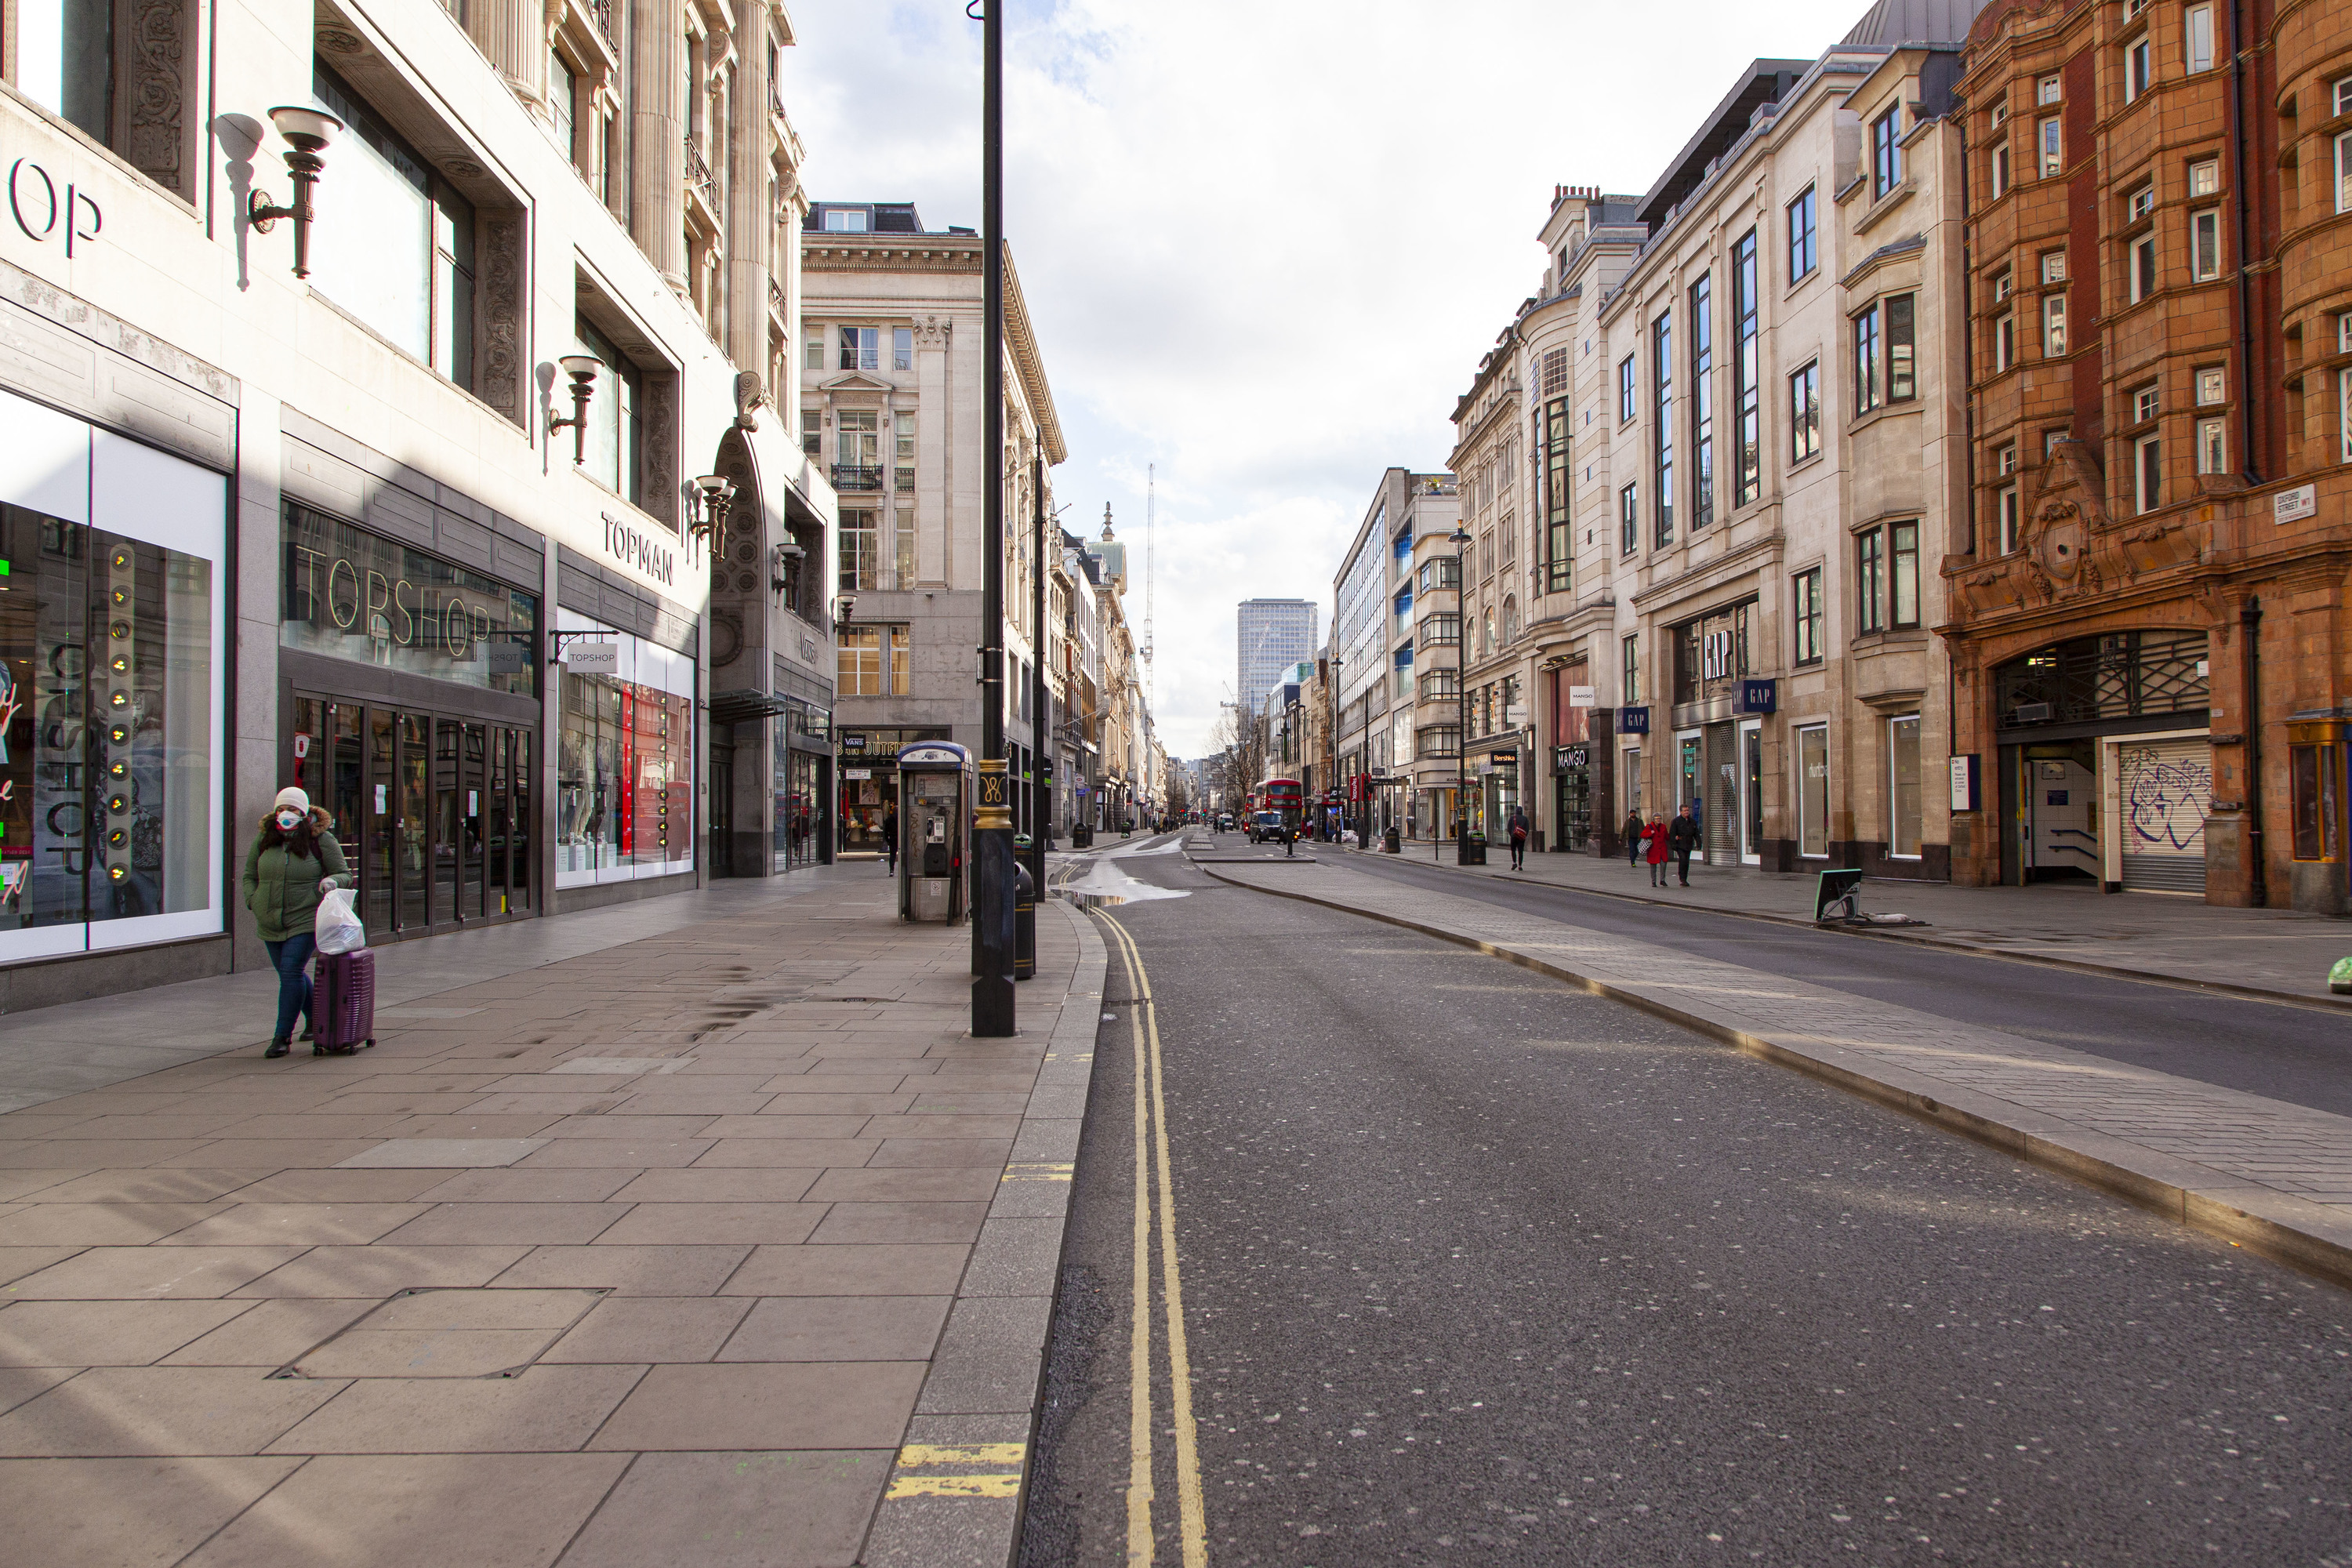 Oxford Street reopens with new safety plans in place